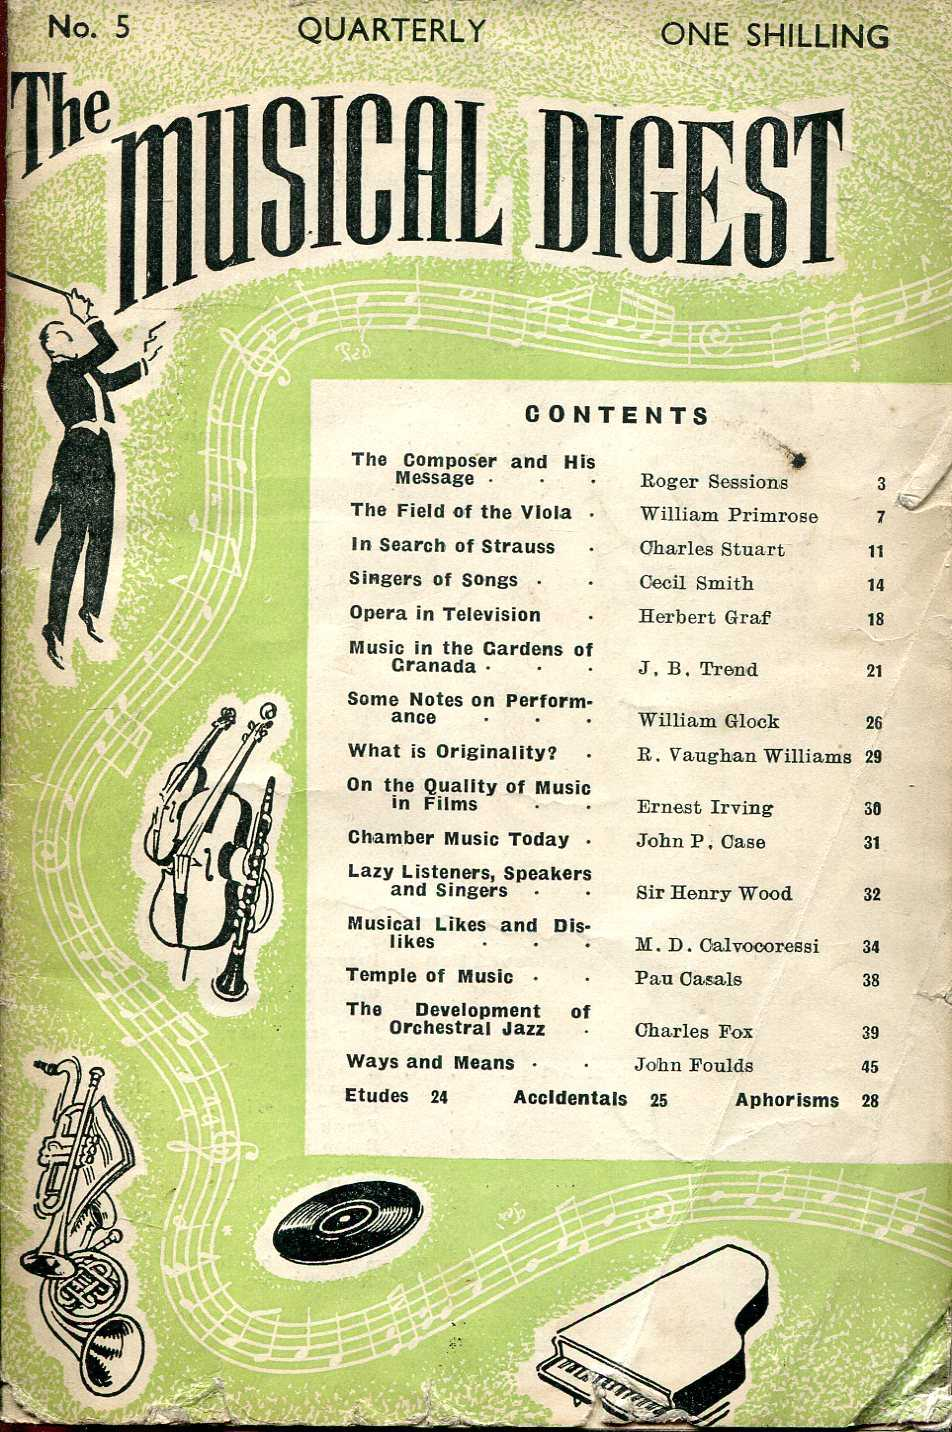 Image for The Musical Digest Quarterly : Volume 1 No 5, Spring 1948